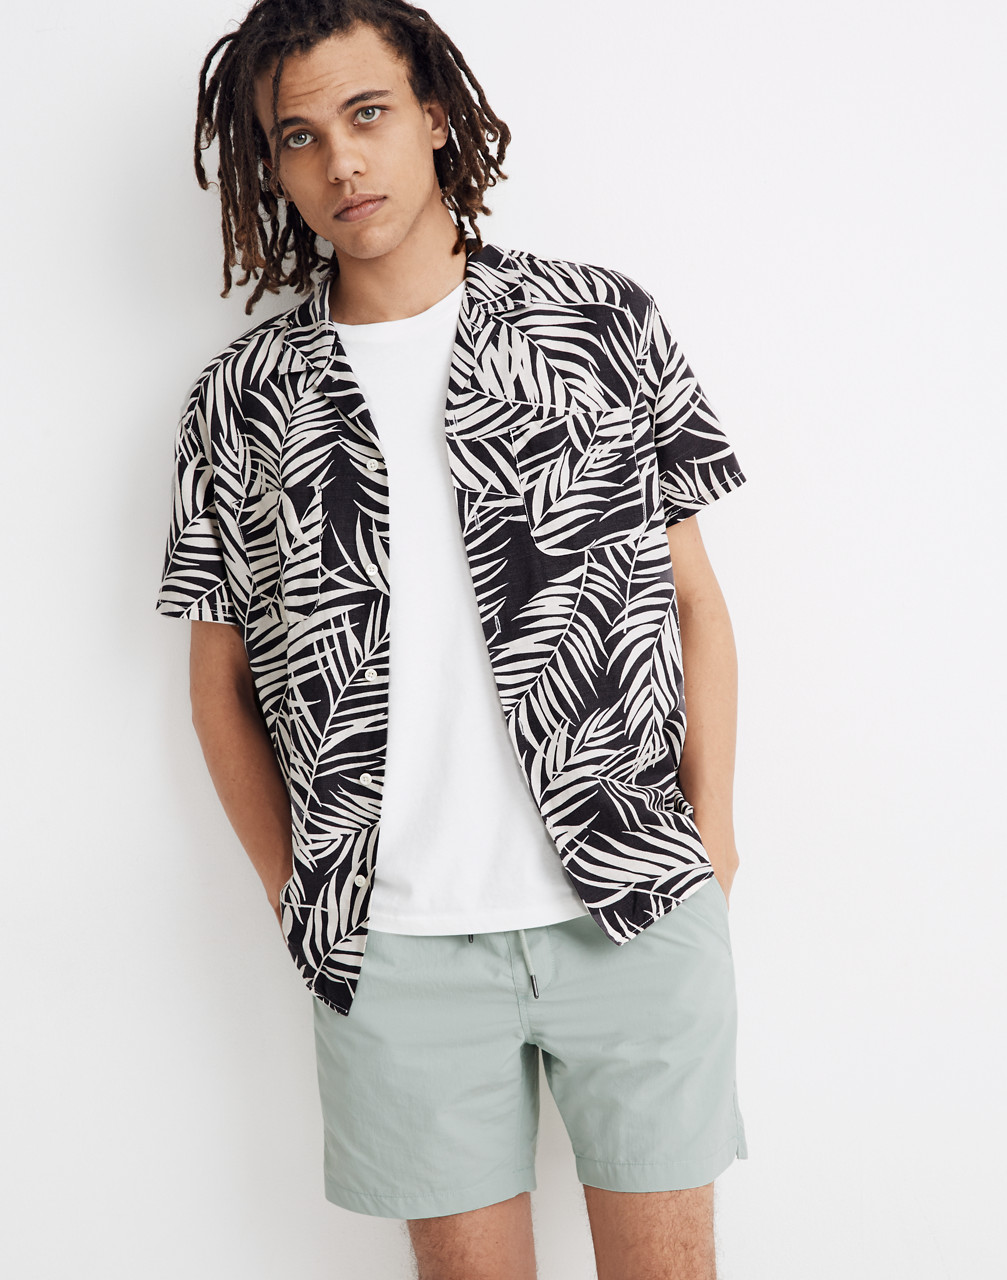 80s Men's Fashion & Clothing for Guys Easy Camp Shirt in Fern Fronds $59.99 AT vintagedancer.com